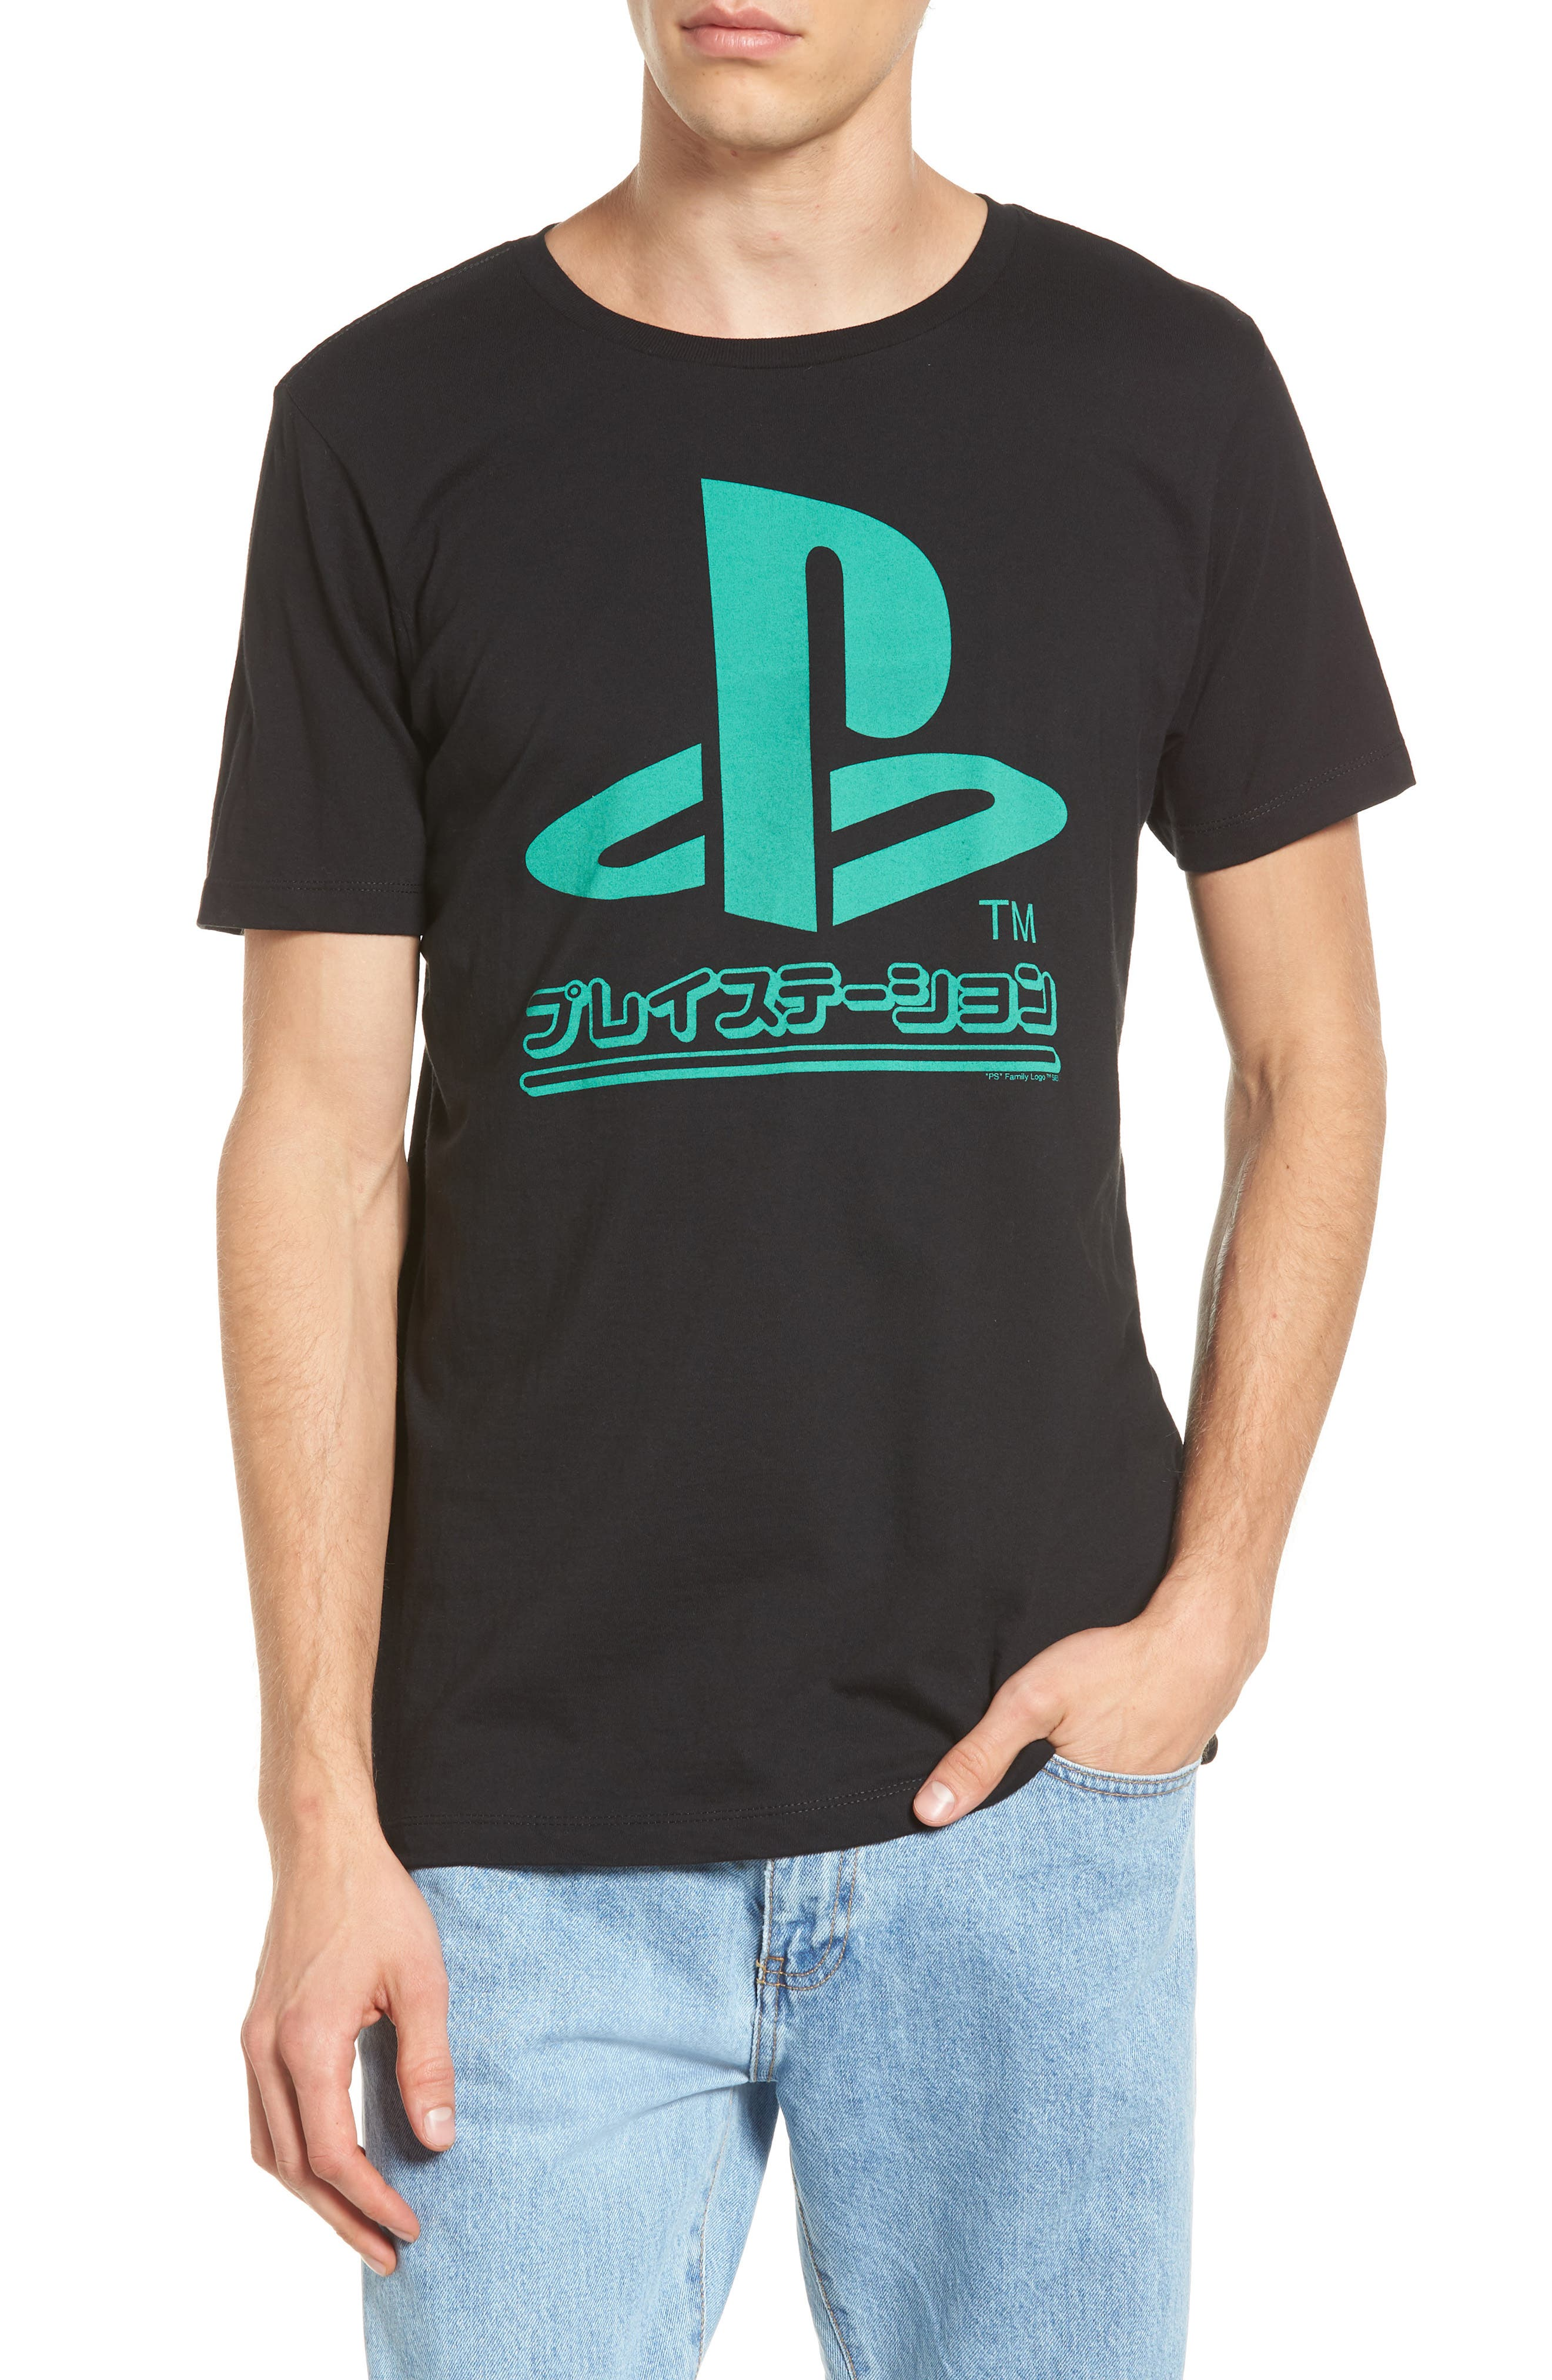 Retro Graphic T-Shirt,                         Main,                         color, Black Playstation Graphic